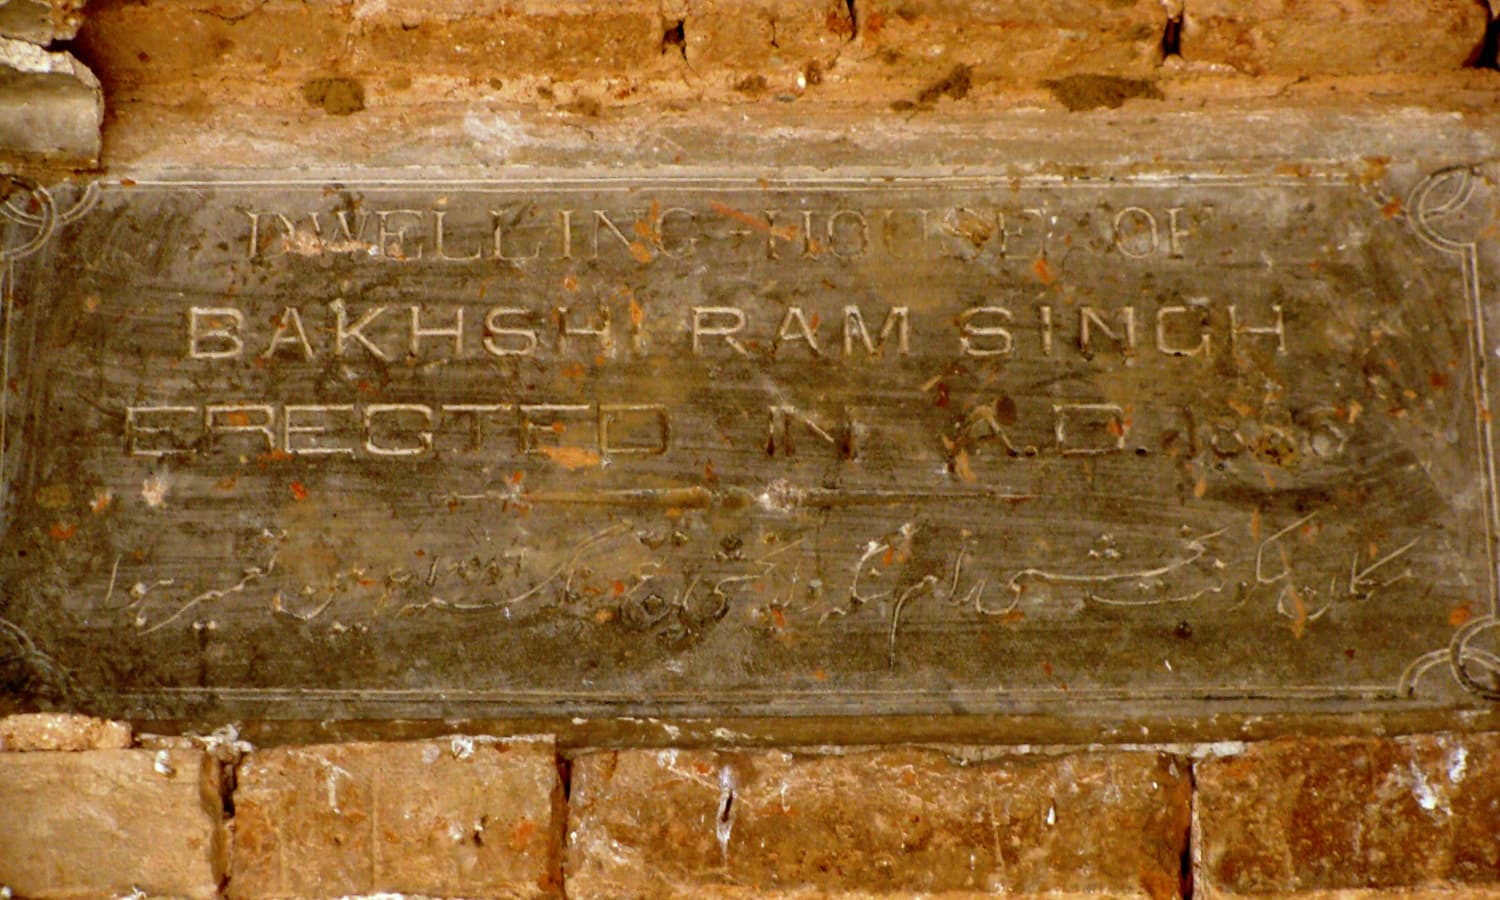 Inscription in haveli of Bakhshi Ram Singh, Kontrilla.